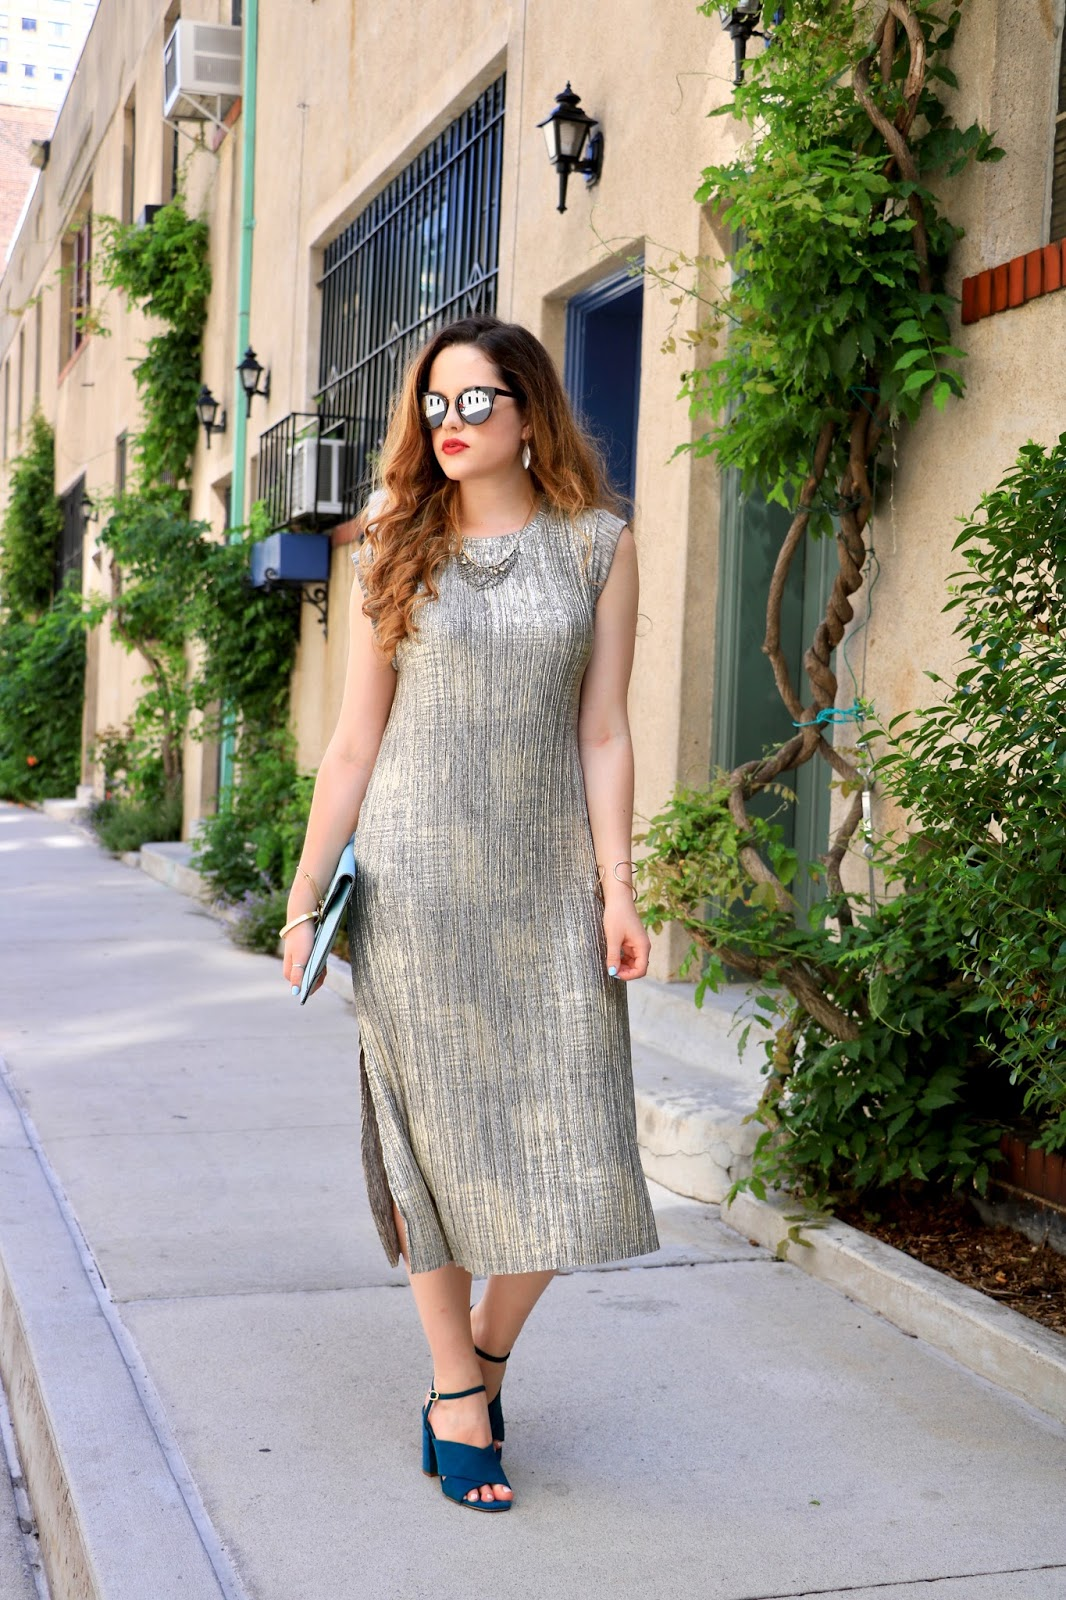 NYC fashion blogger showing how to wear a gold dress